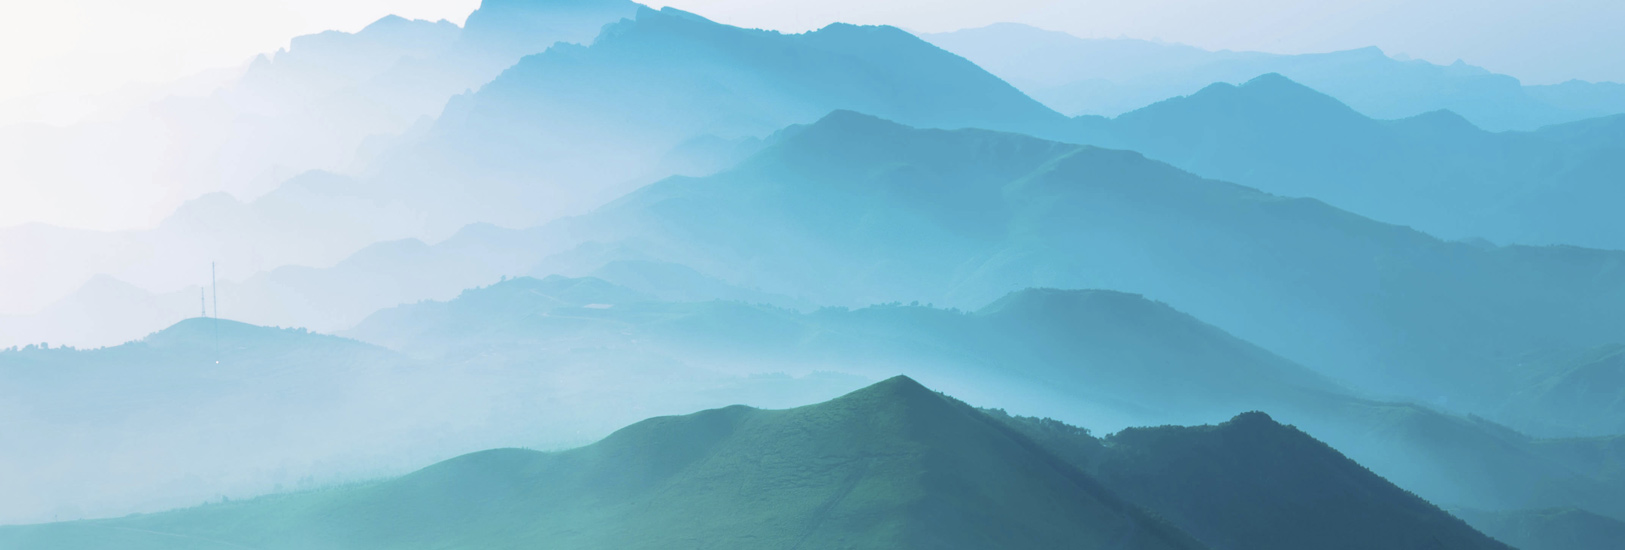 banner-mountains2